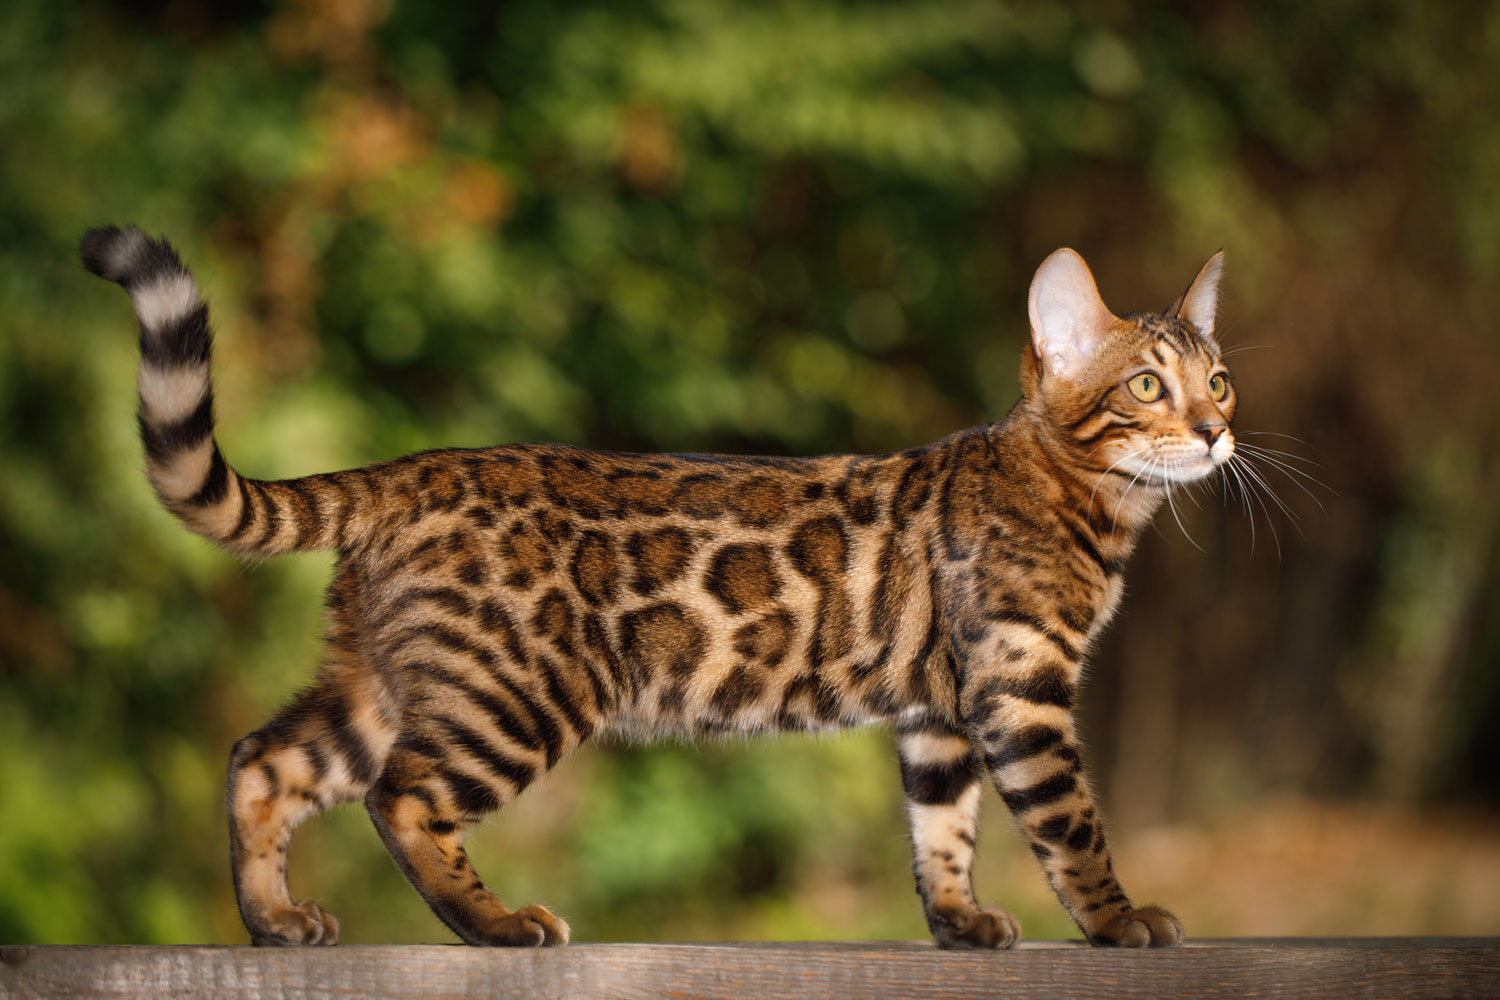 A big Bengal cat hunting outdoors for rats or others